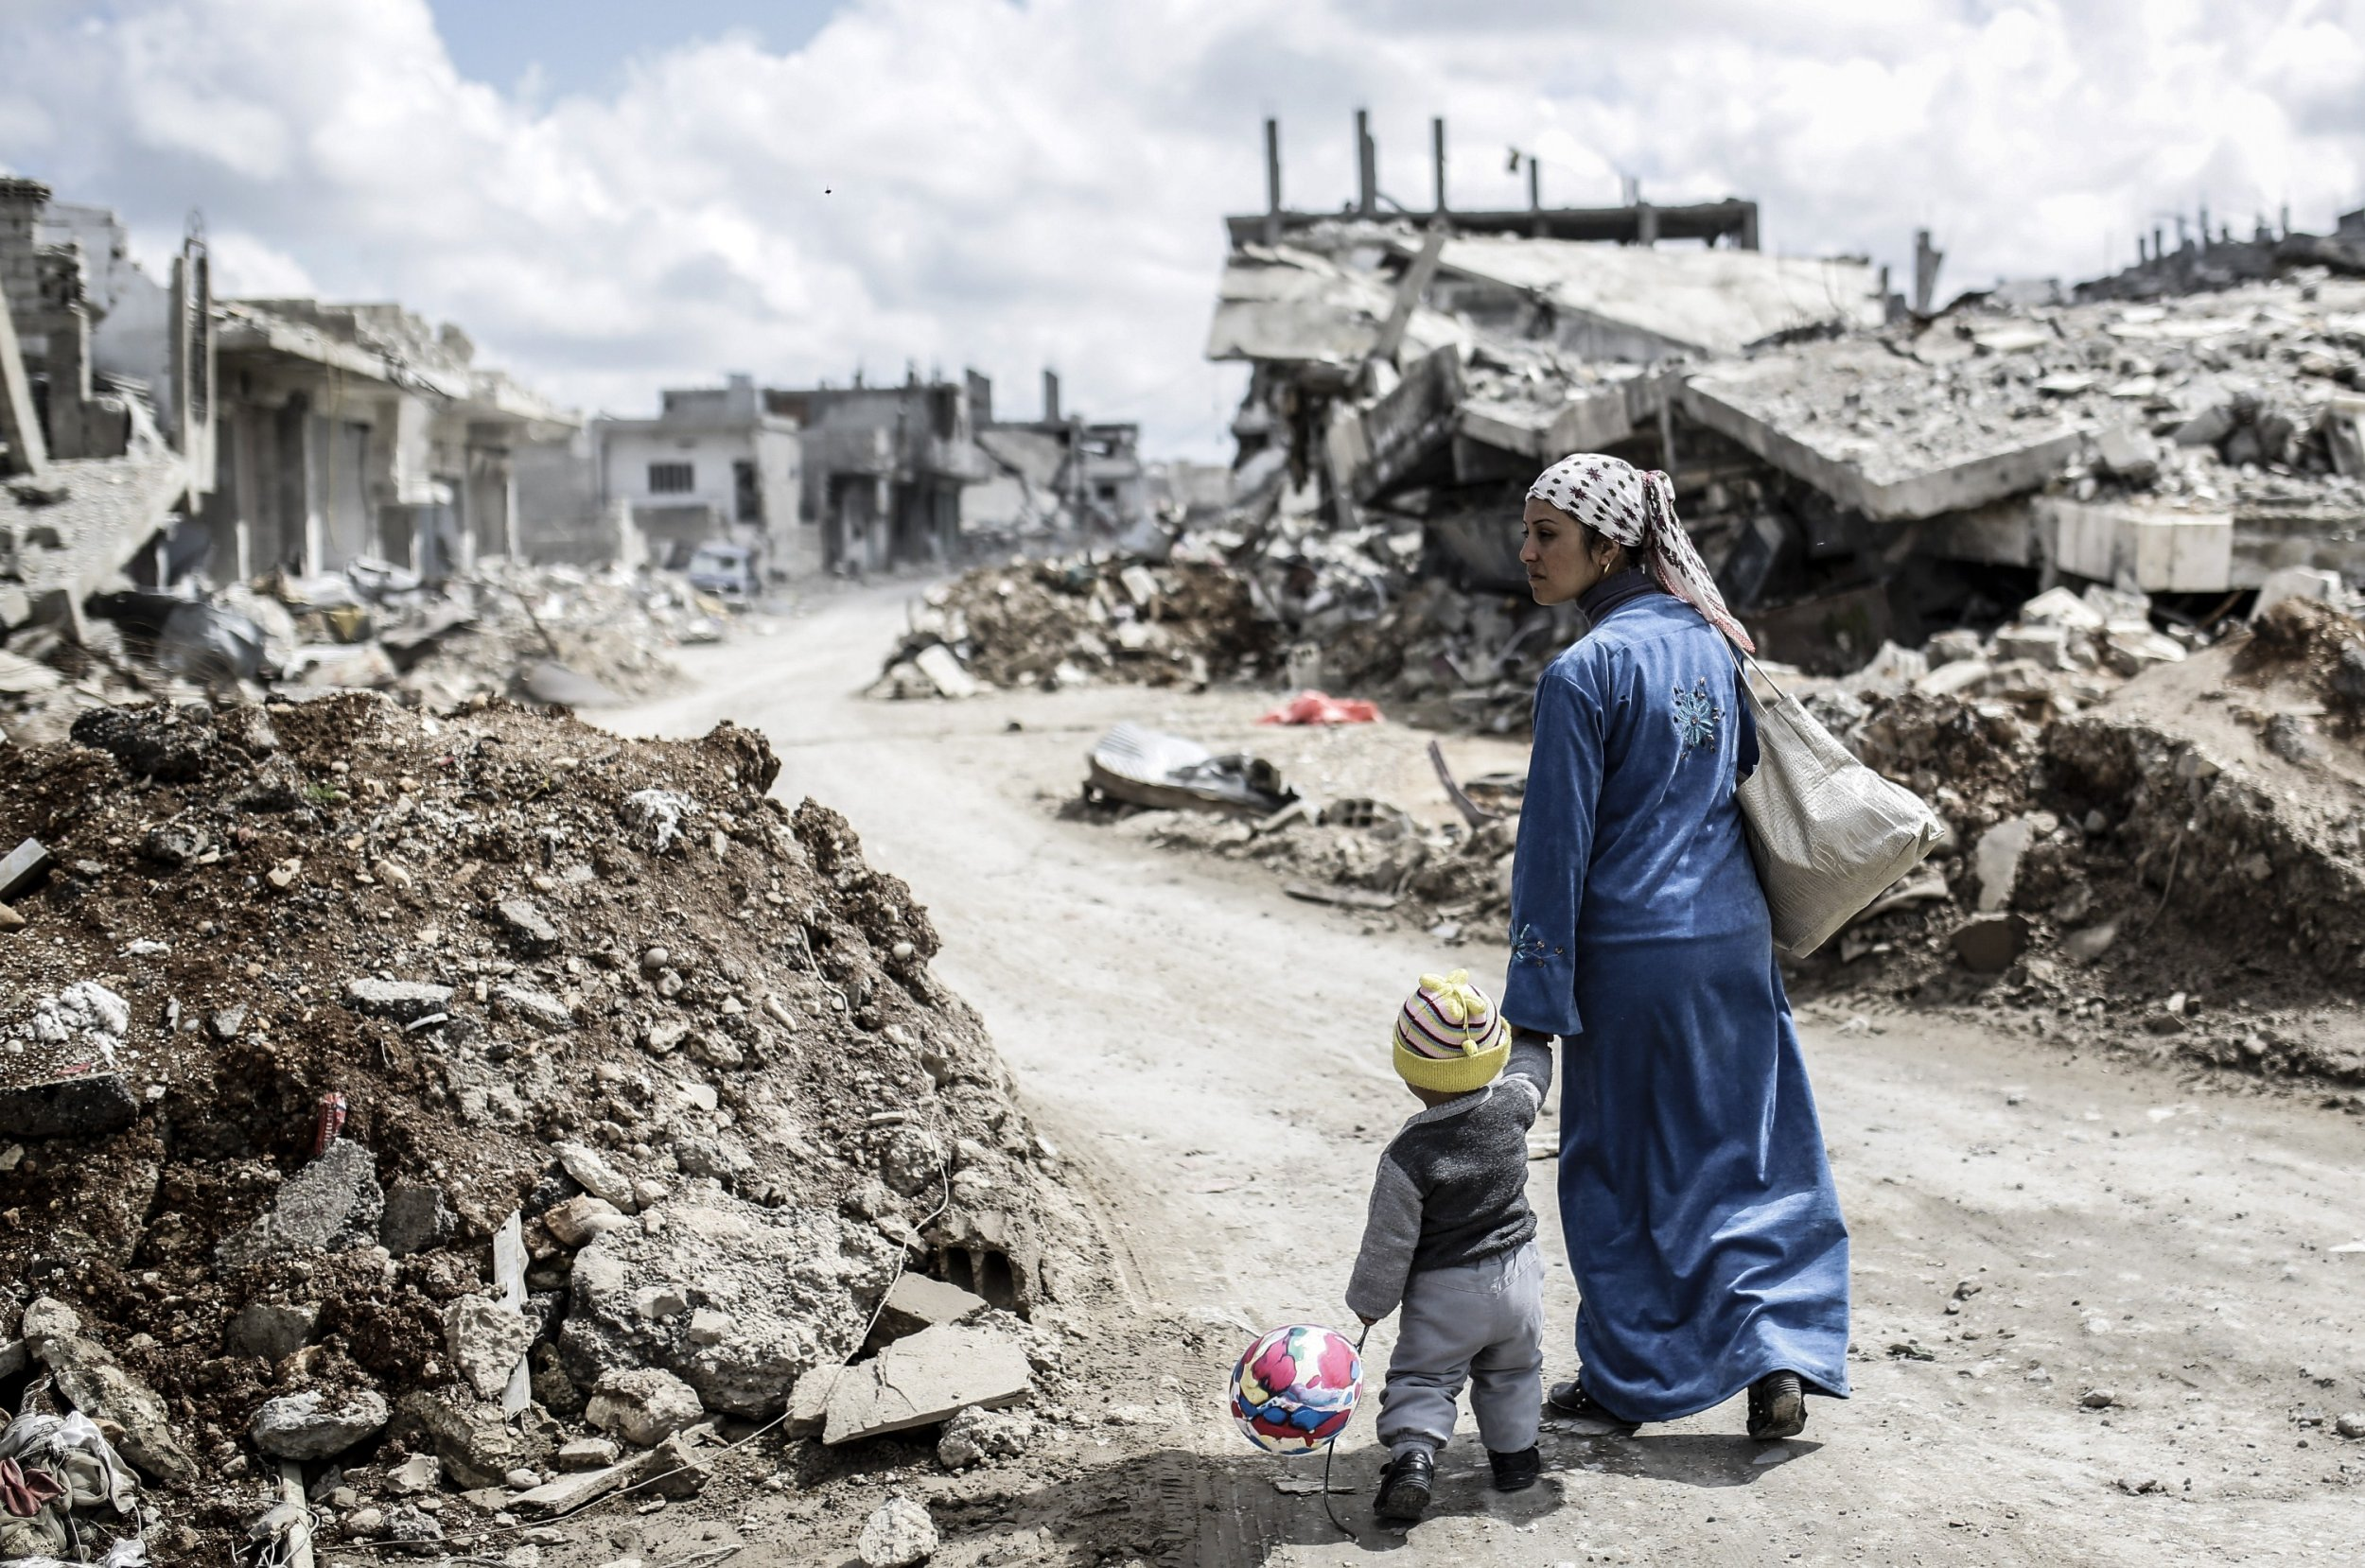 Syrian conflict